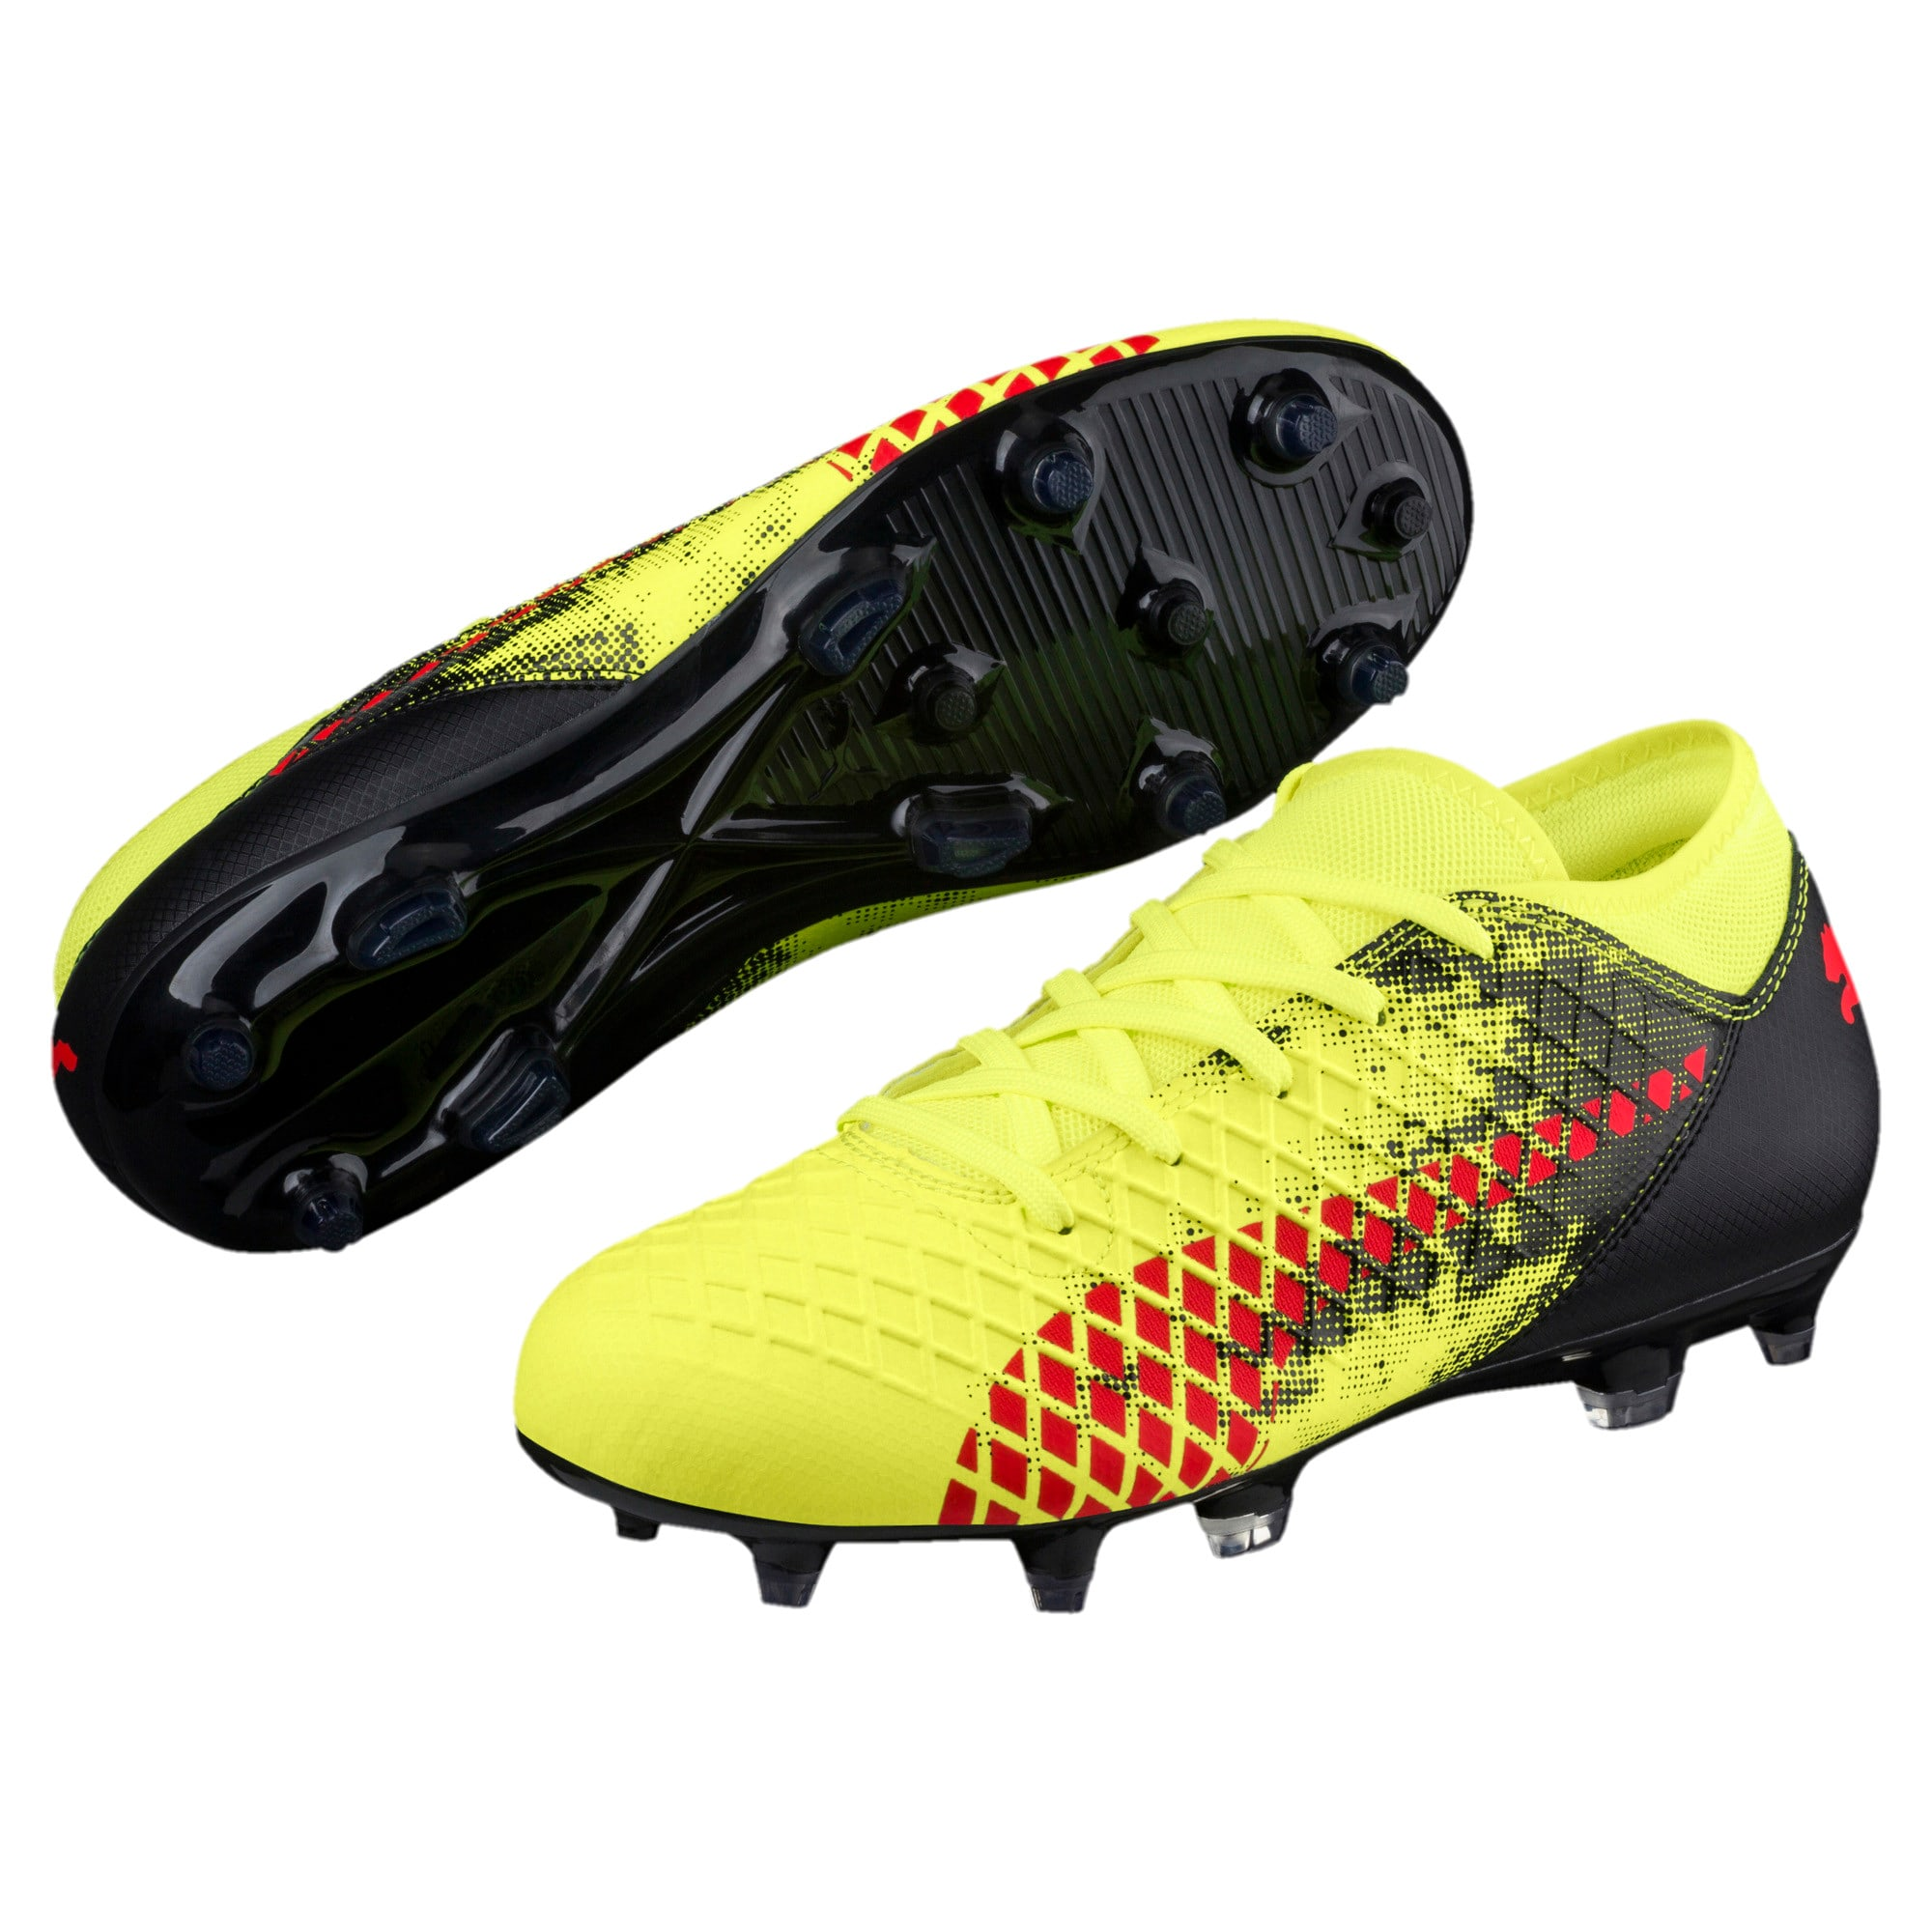 Thumbnail 2 of FUTURE 18.4 FG/AG Soccer Cleats JR, Yellow-Red-Black, medium